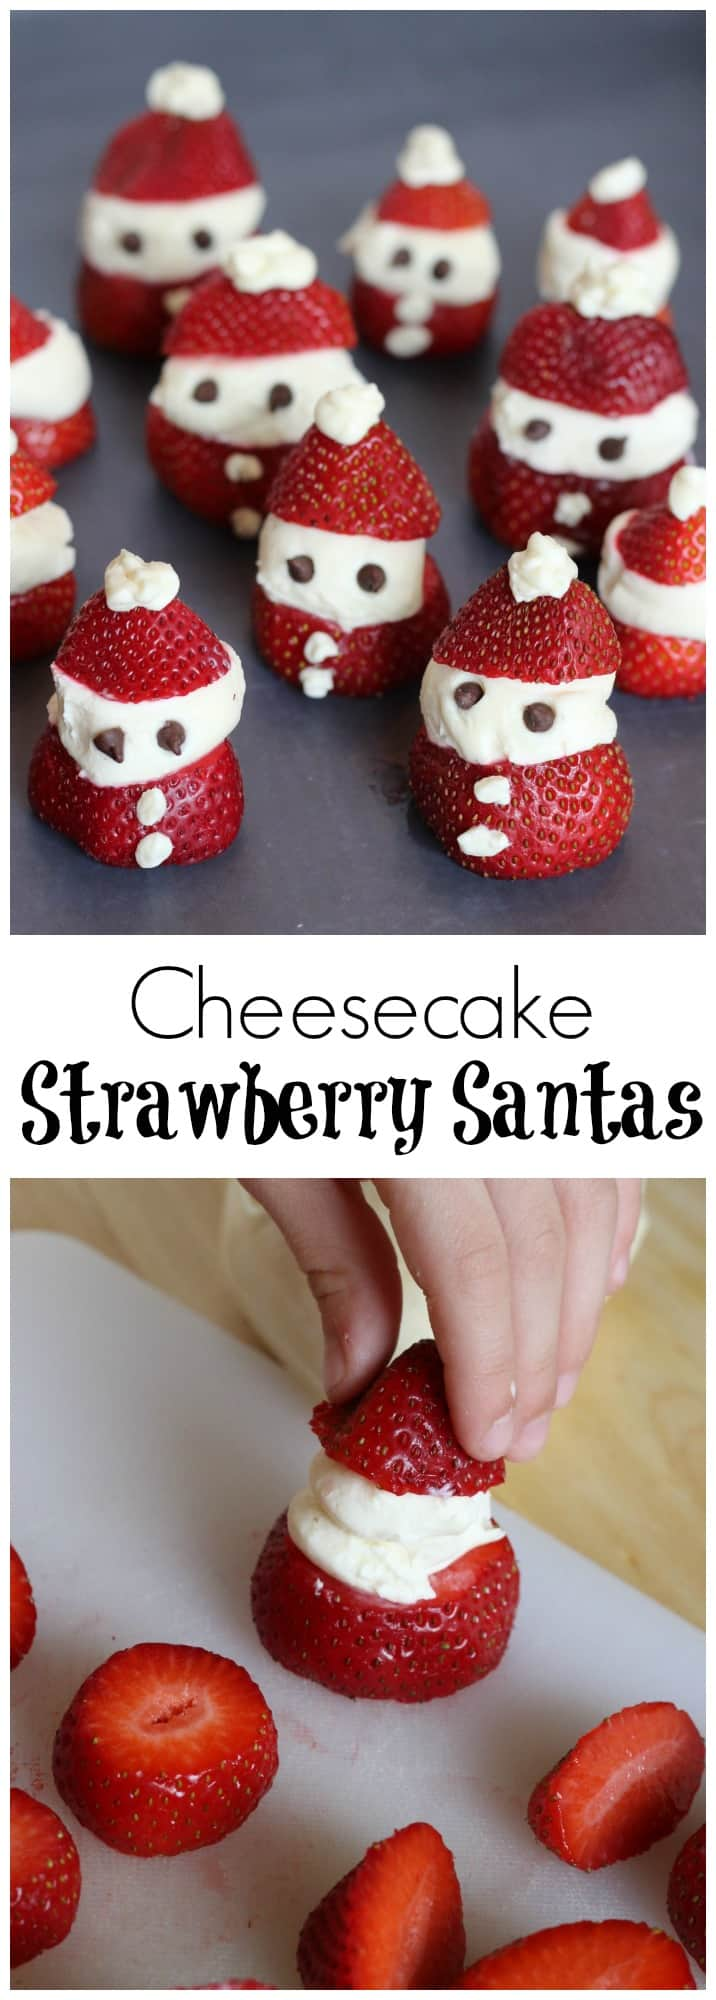 Want an easy kitchen craft to do with your kids? Everyone is going to love these Cheesecake stuffed Strawberry Santas!